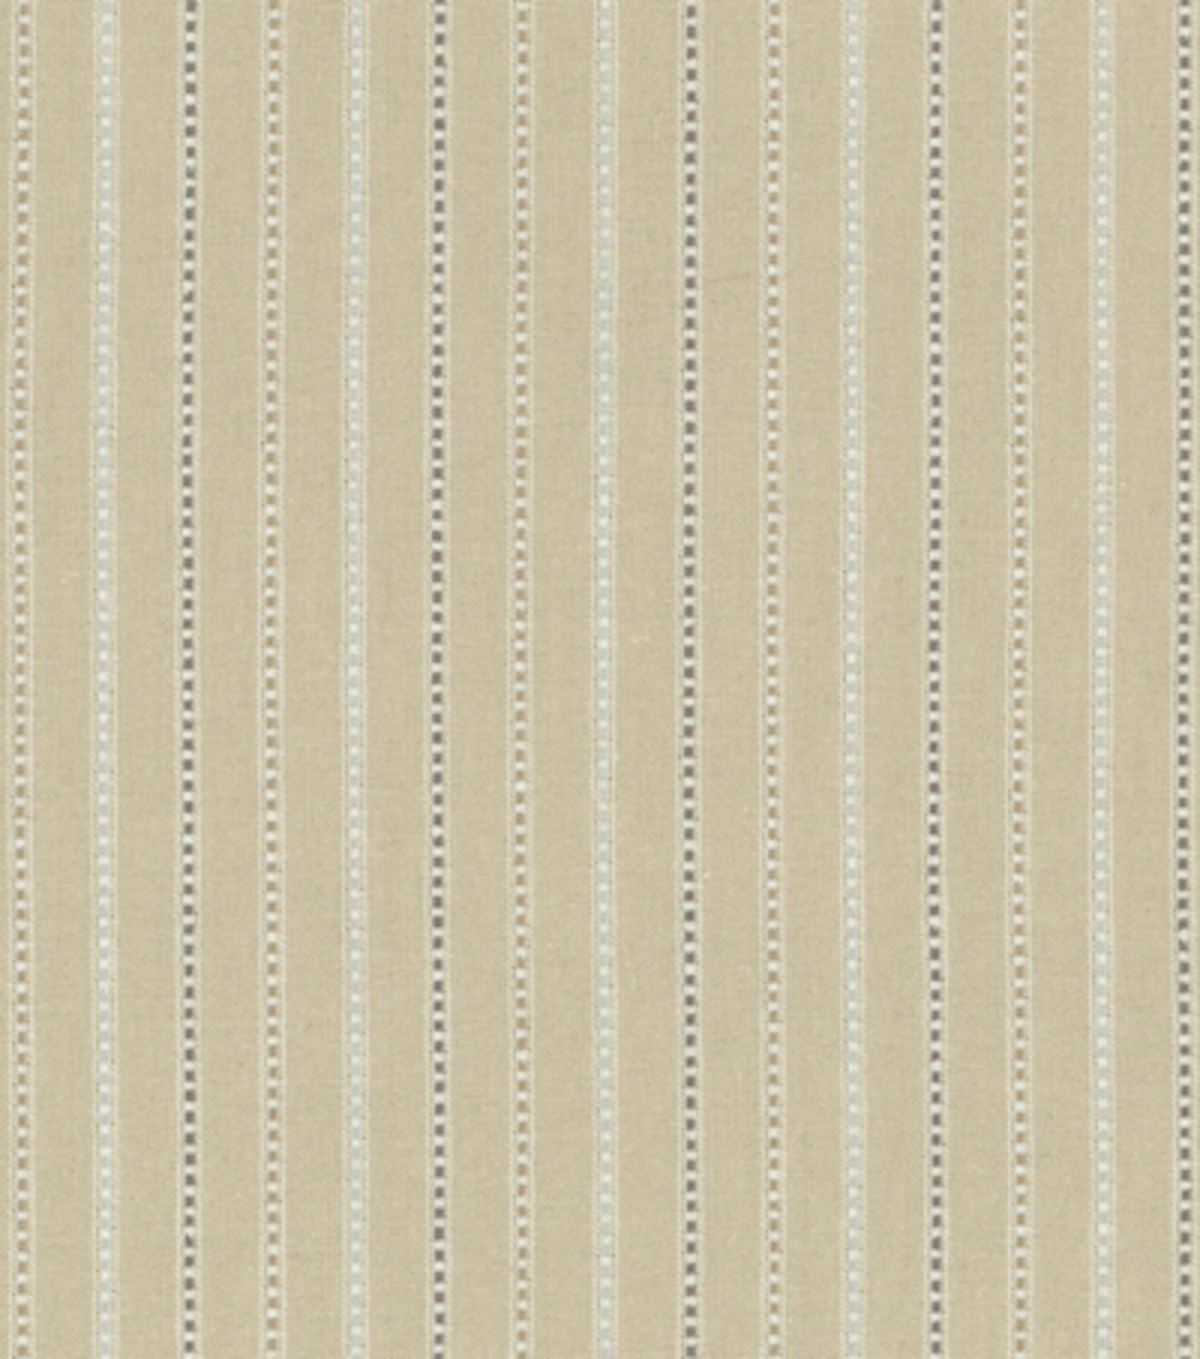 Home Decor 8\u0022x8\u0022 Fabric Swatch-Upholstery Fabric-Waverly Highwire/Ironstone